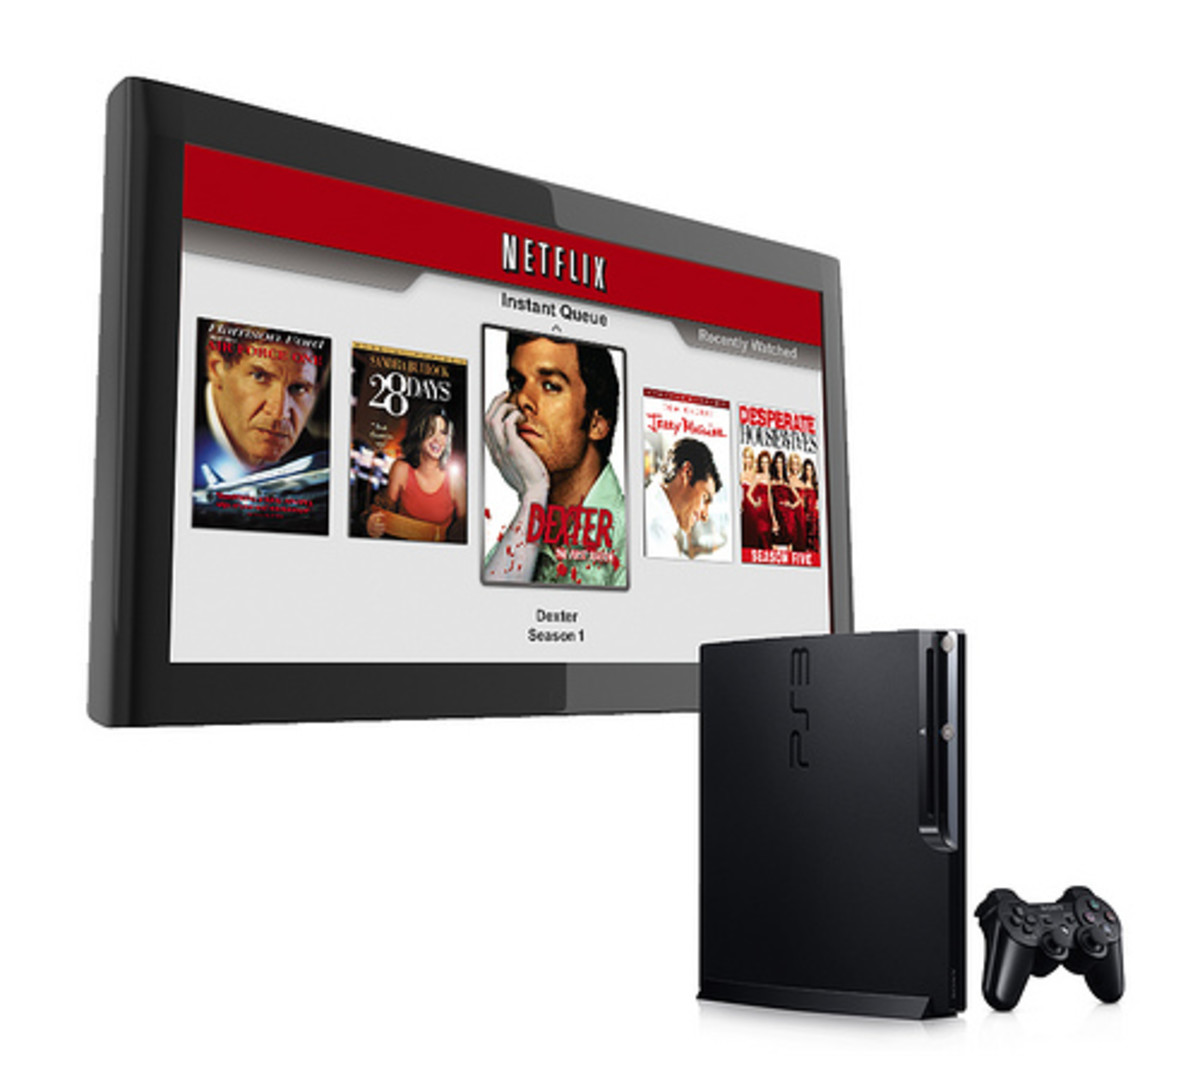 Netflix was unveiled on the PS3 in November 2009.